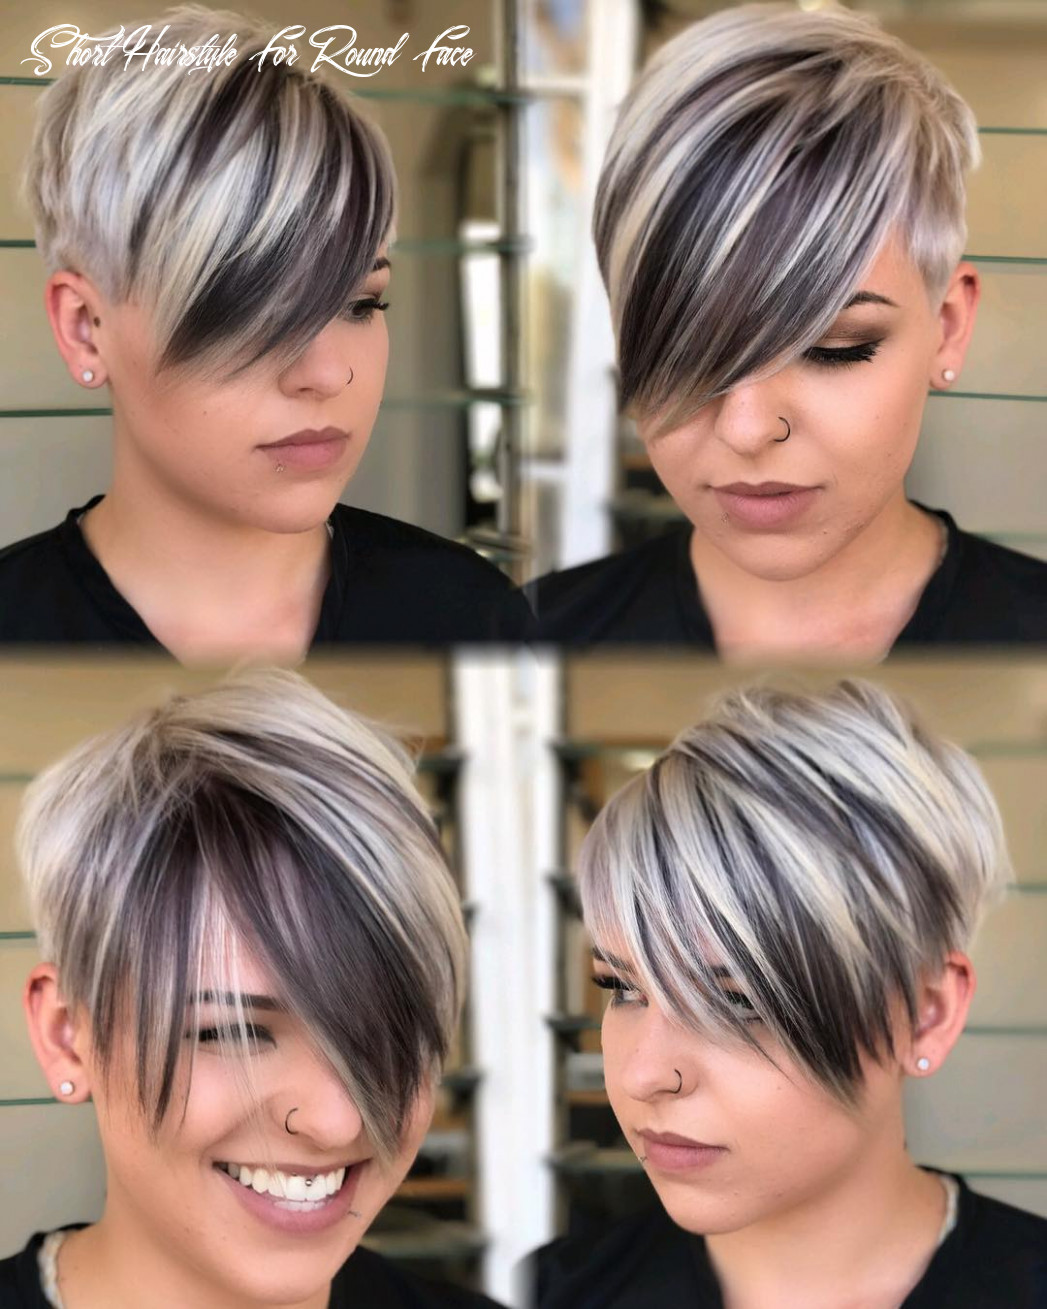 10 short hairstyles for round faces with slimming effect hadviser short hairstyle for round face